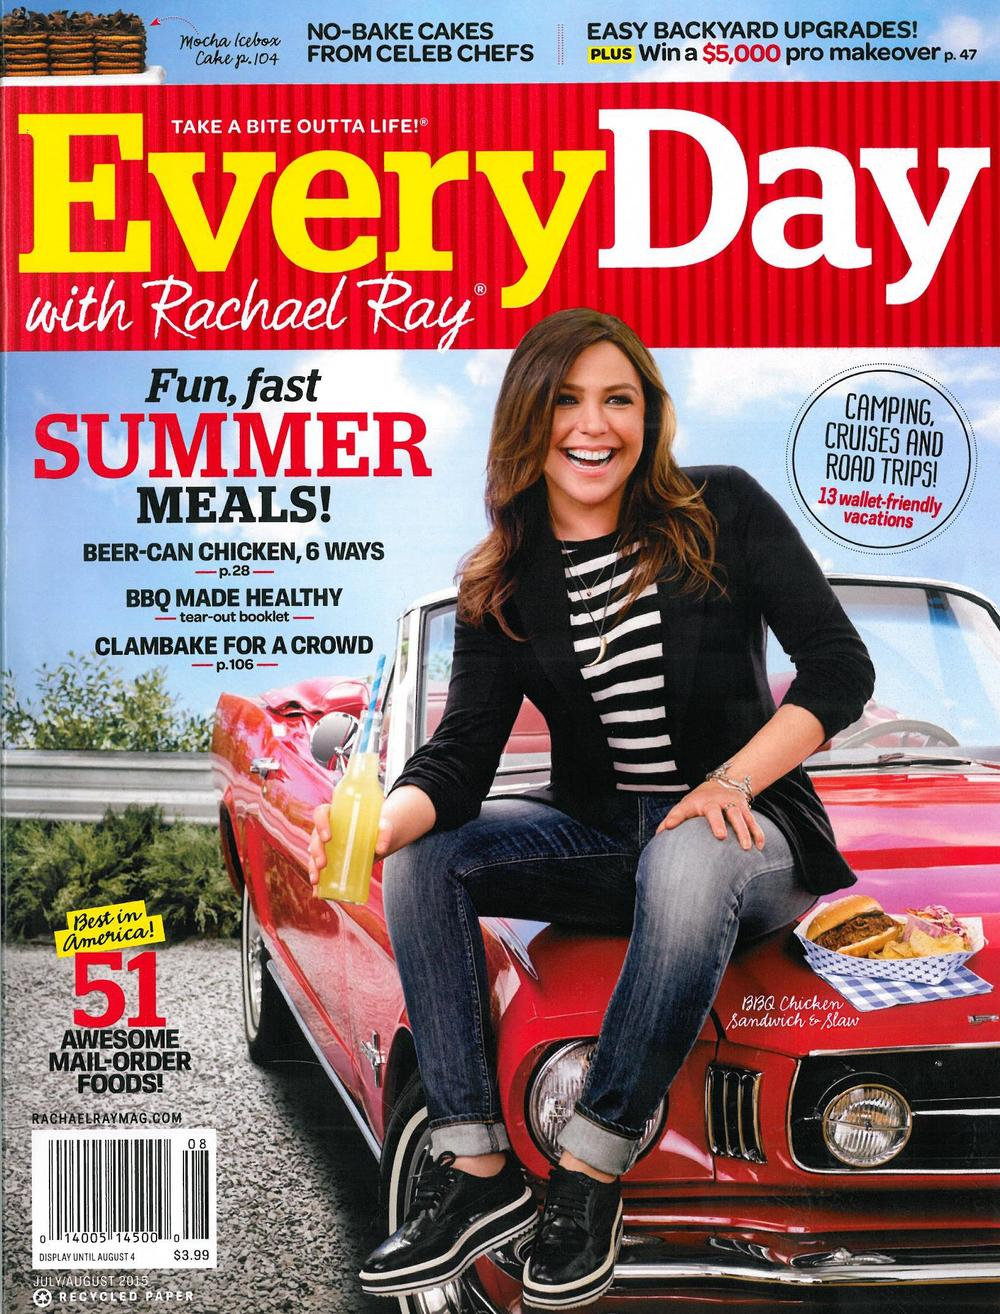 every day with rachael ray cover.jpg